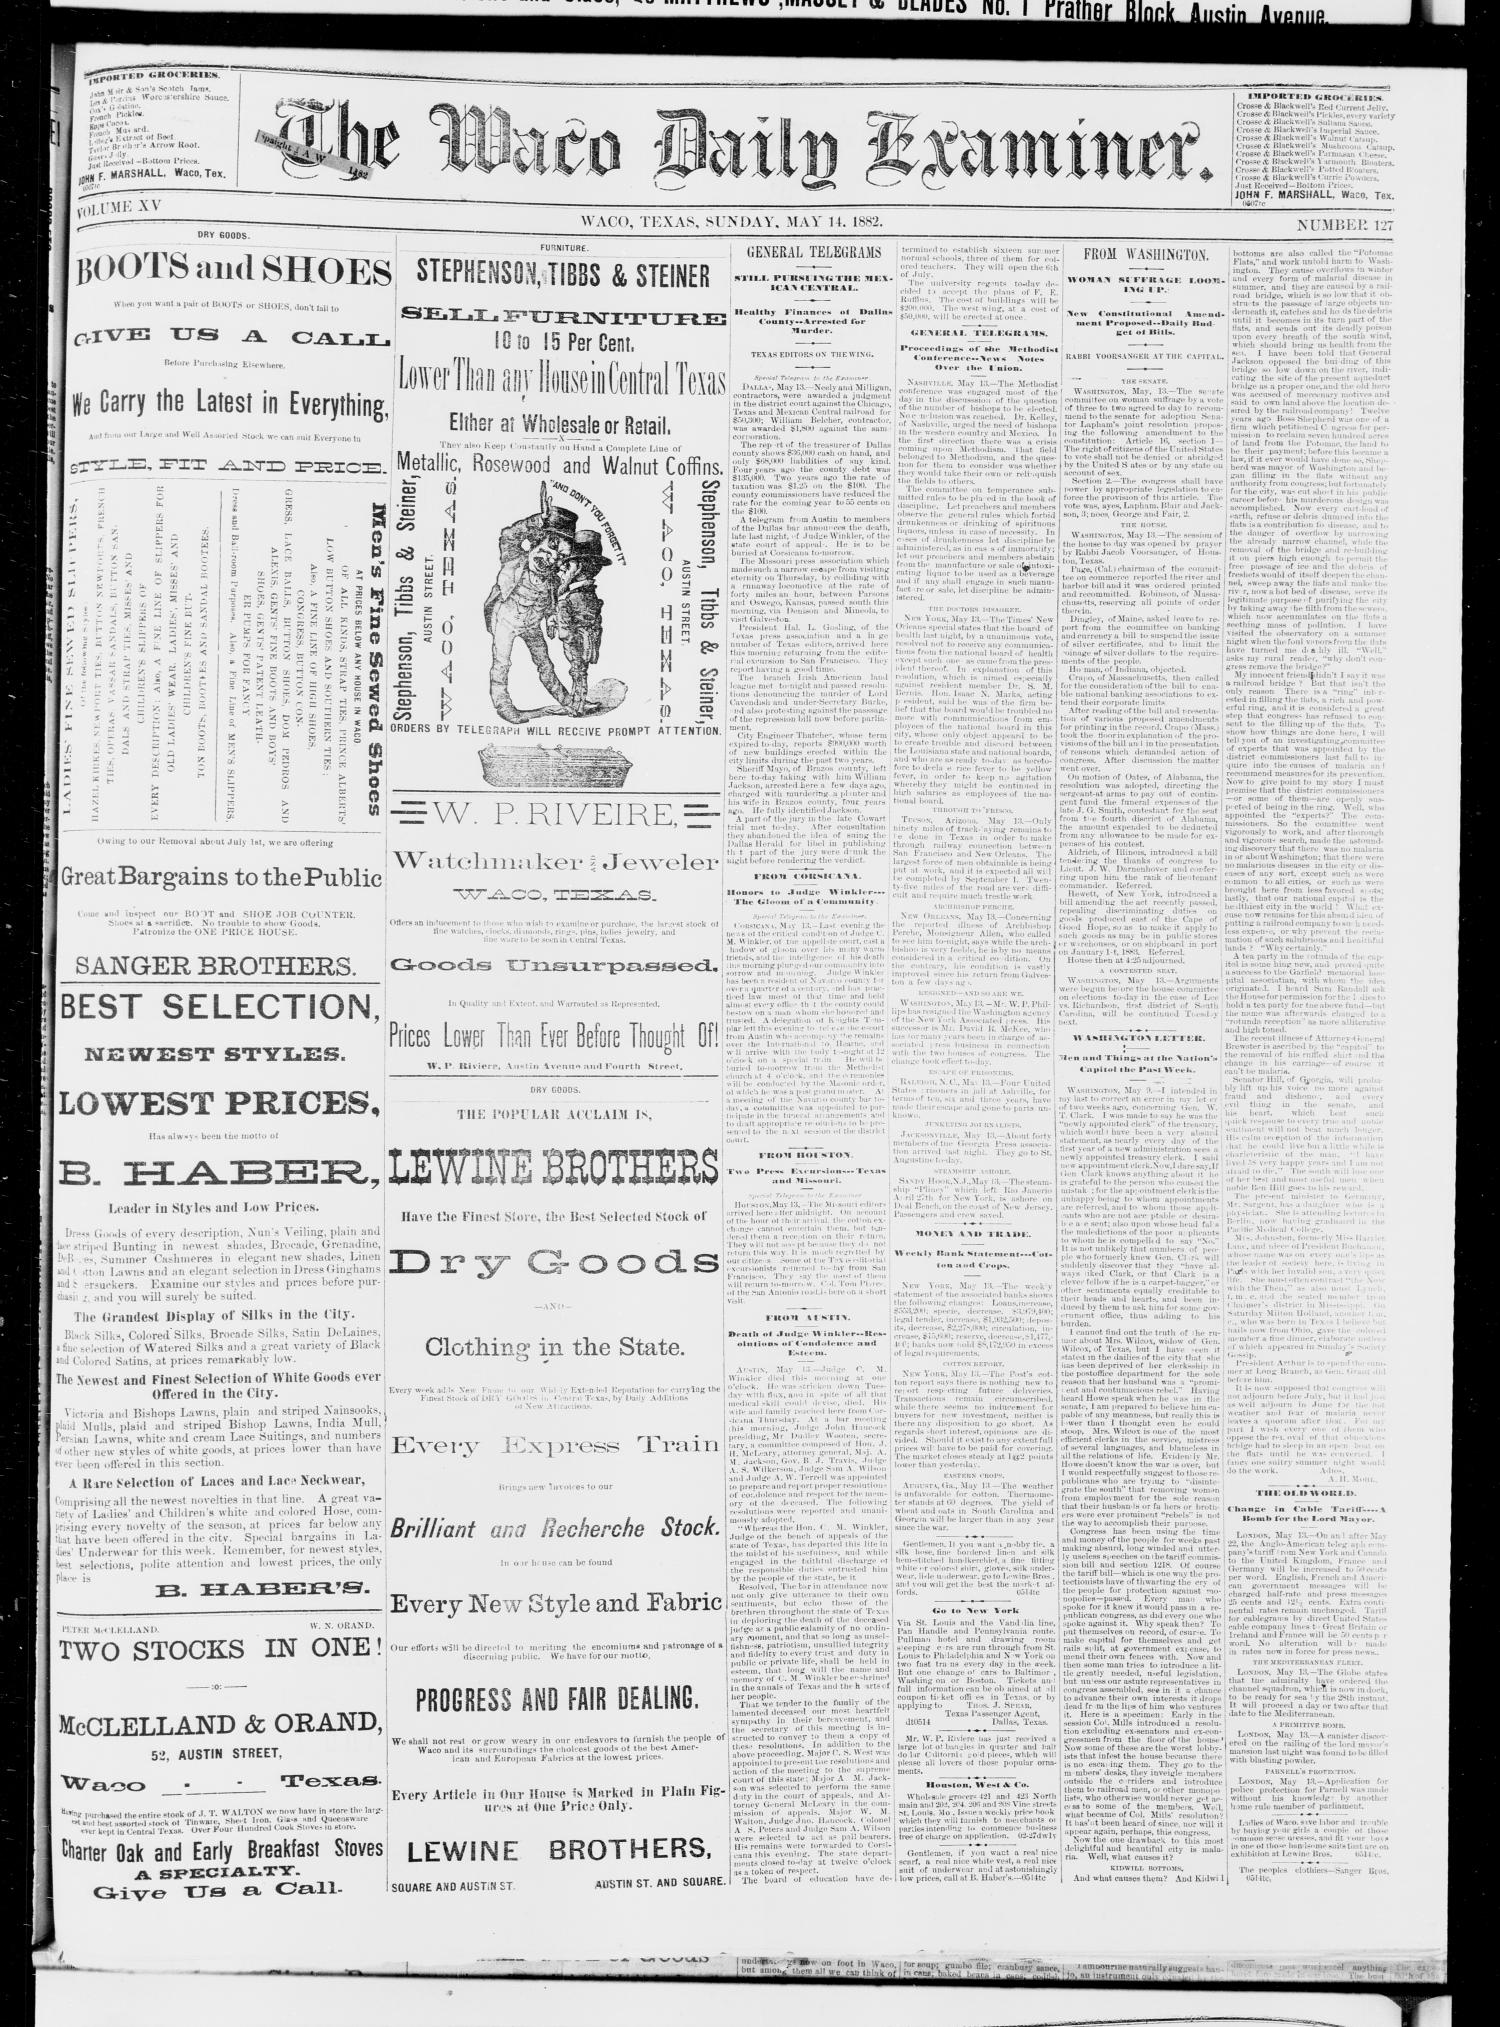 The Waco Daily Examiner. (Waco, Tex.), Vol. 15, No. 127, Ed. 1, Sunday, May 14, 1882                                                                                                      [Sequence #]: 1 of 4